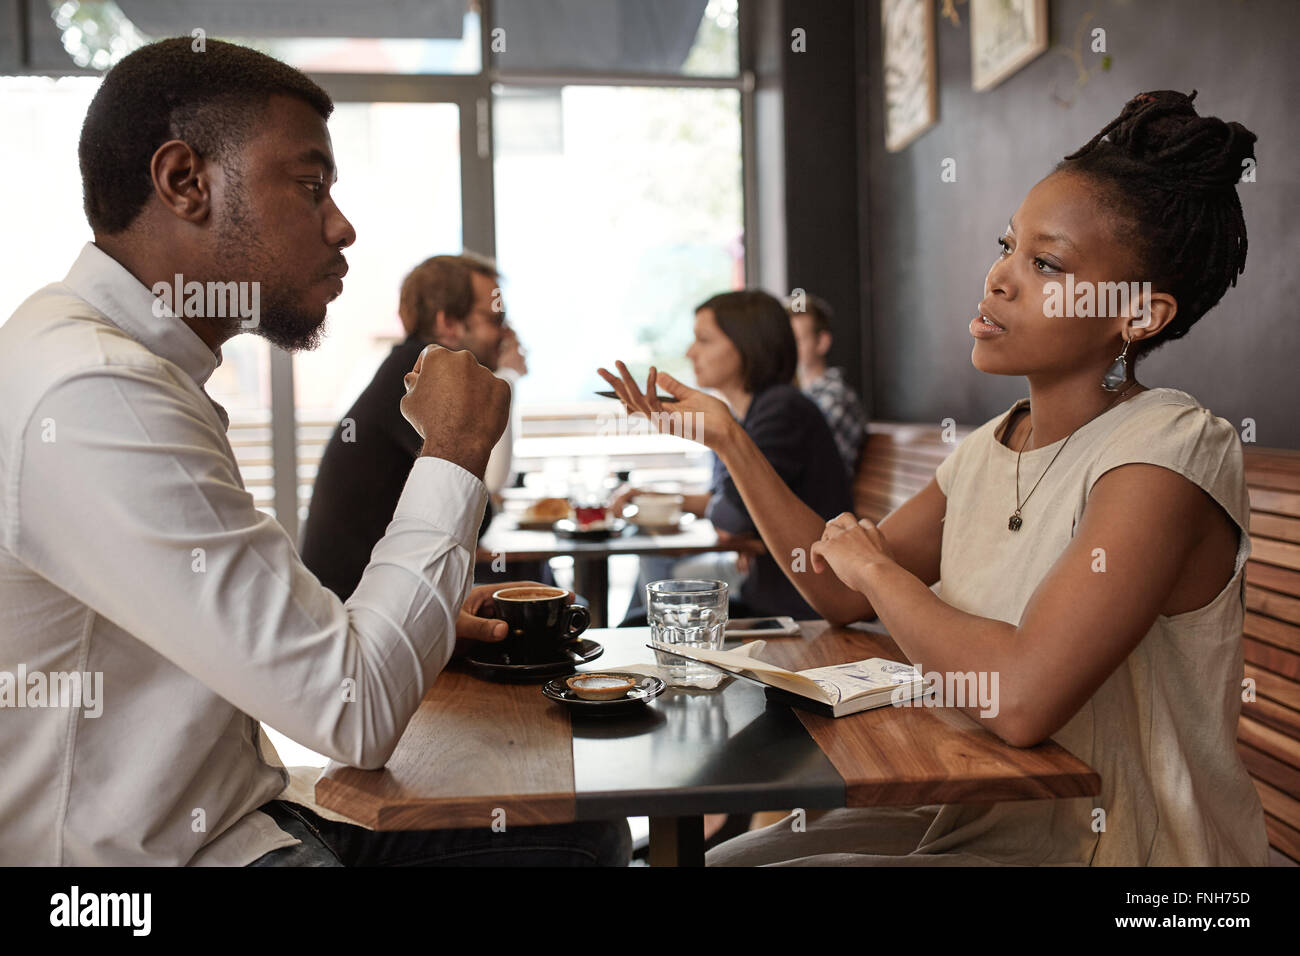 African woman and man discussing business ideas at busy cafe - Stock Image